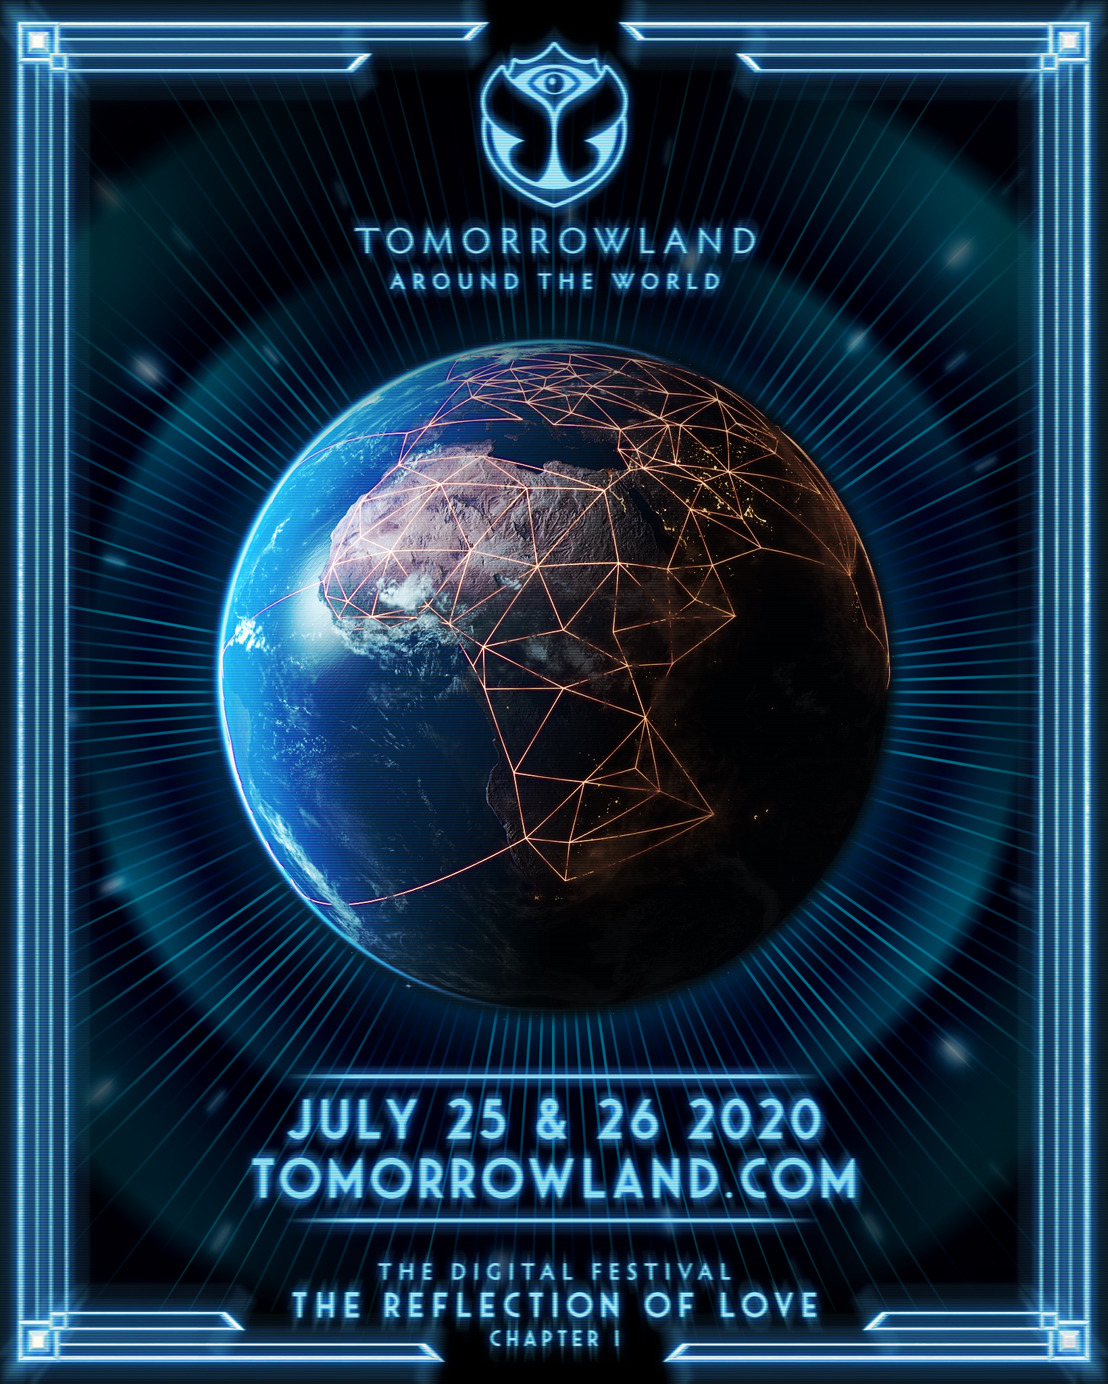 KATY PERRY rejoint le line-up de Tomorrowland Around the World !